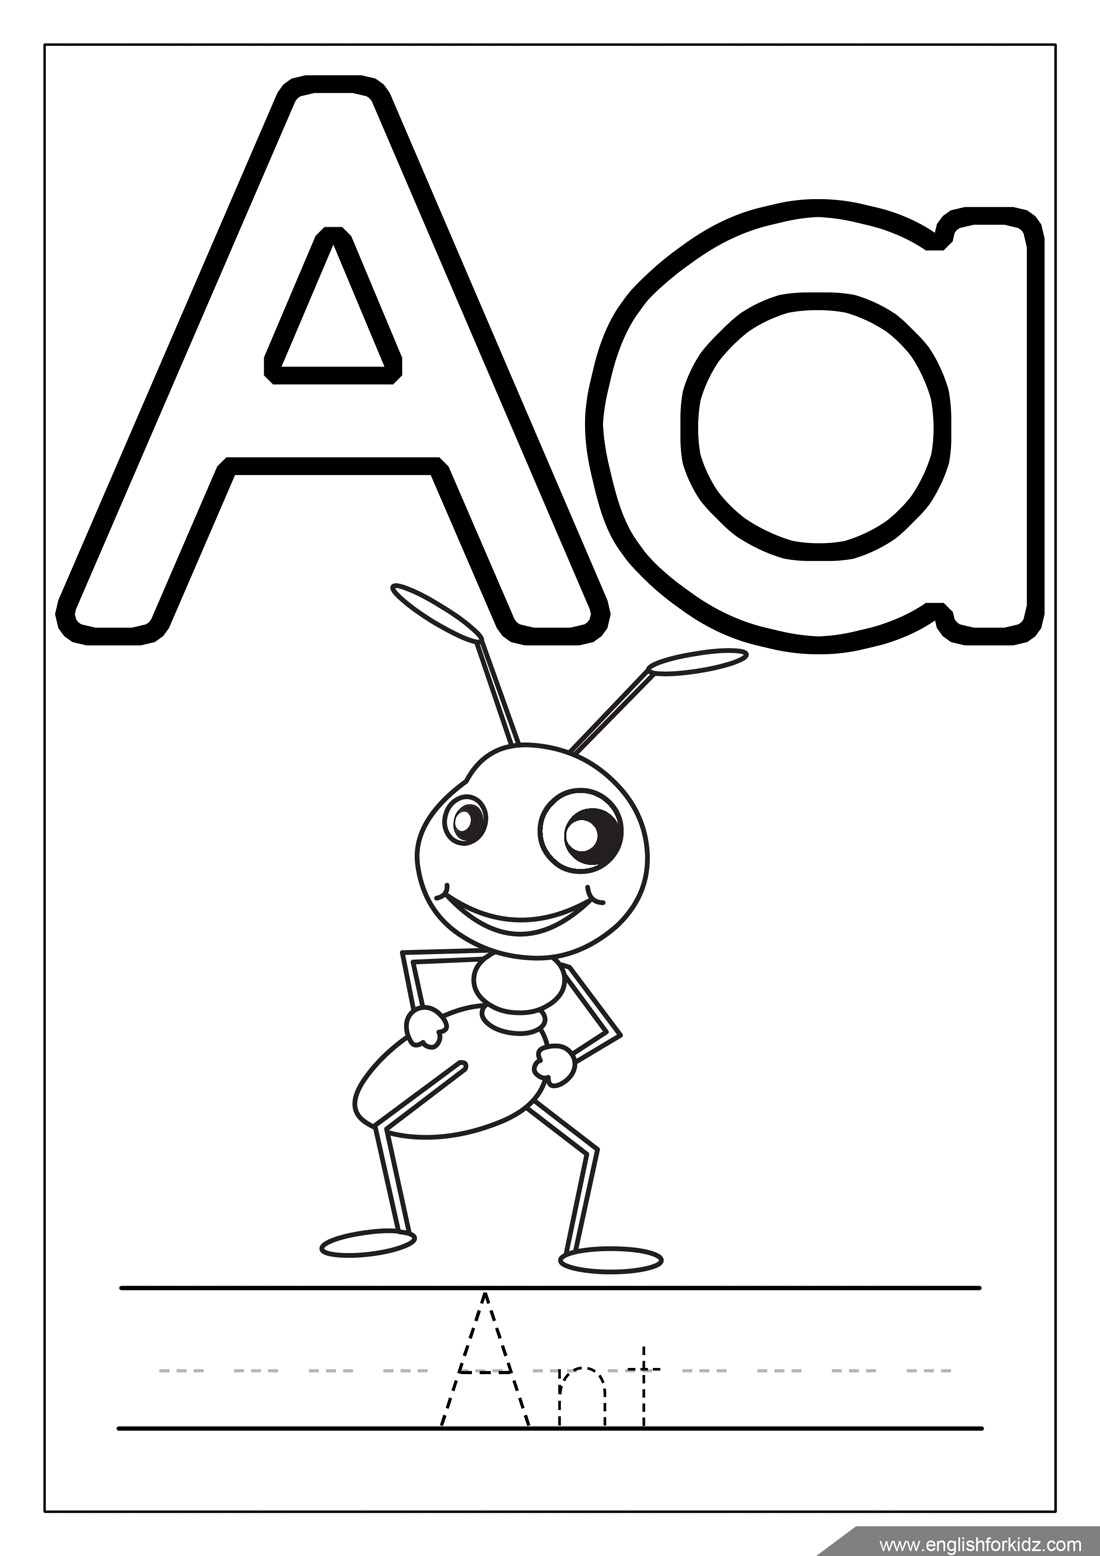 alphabet coloring book printable printable alphabet coloring pages letters a j book coloring printable alphabet